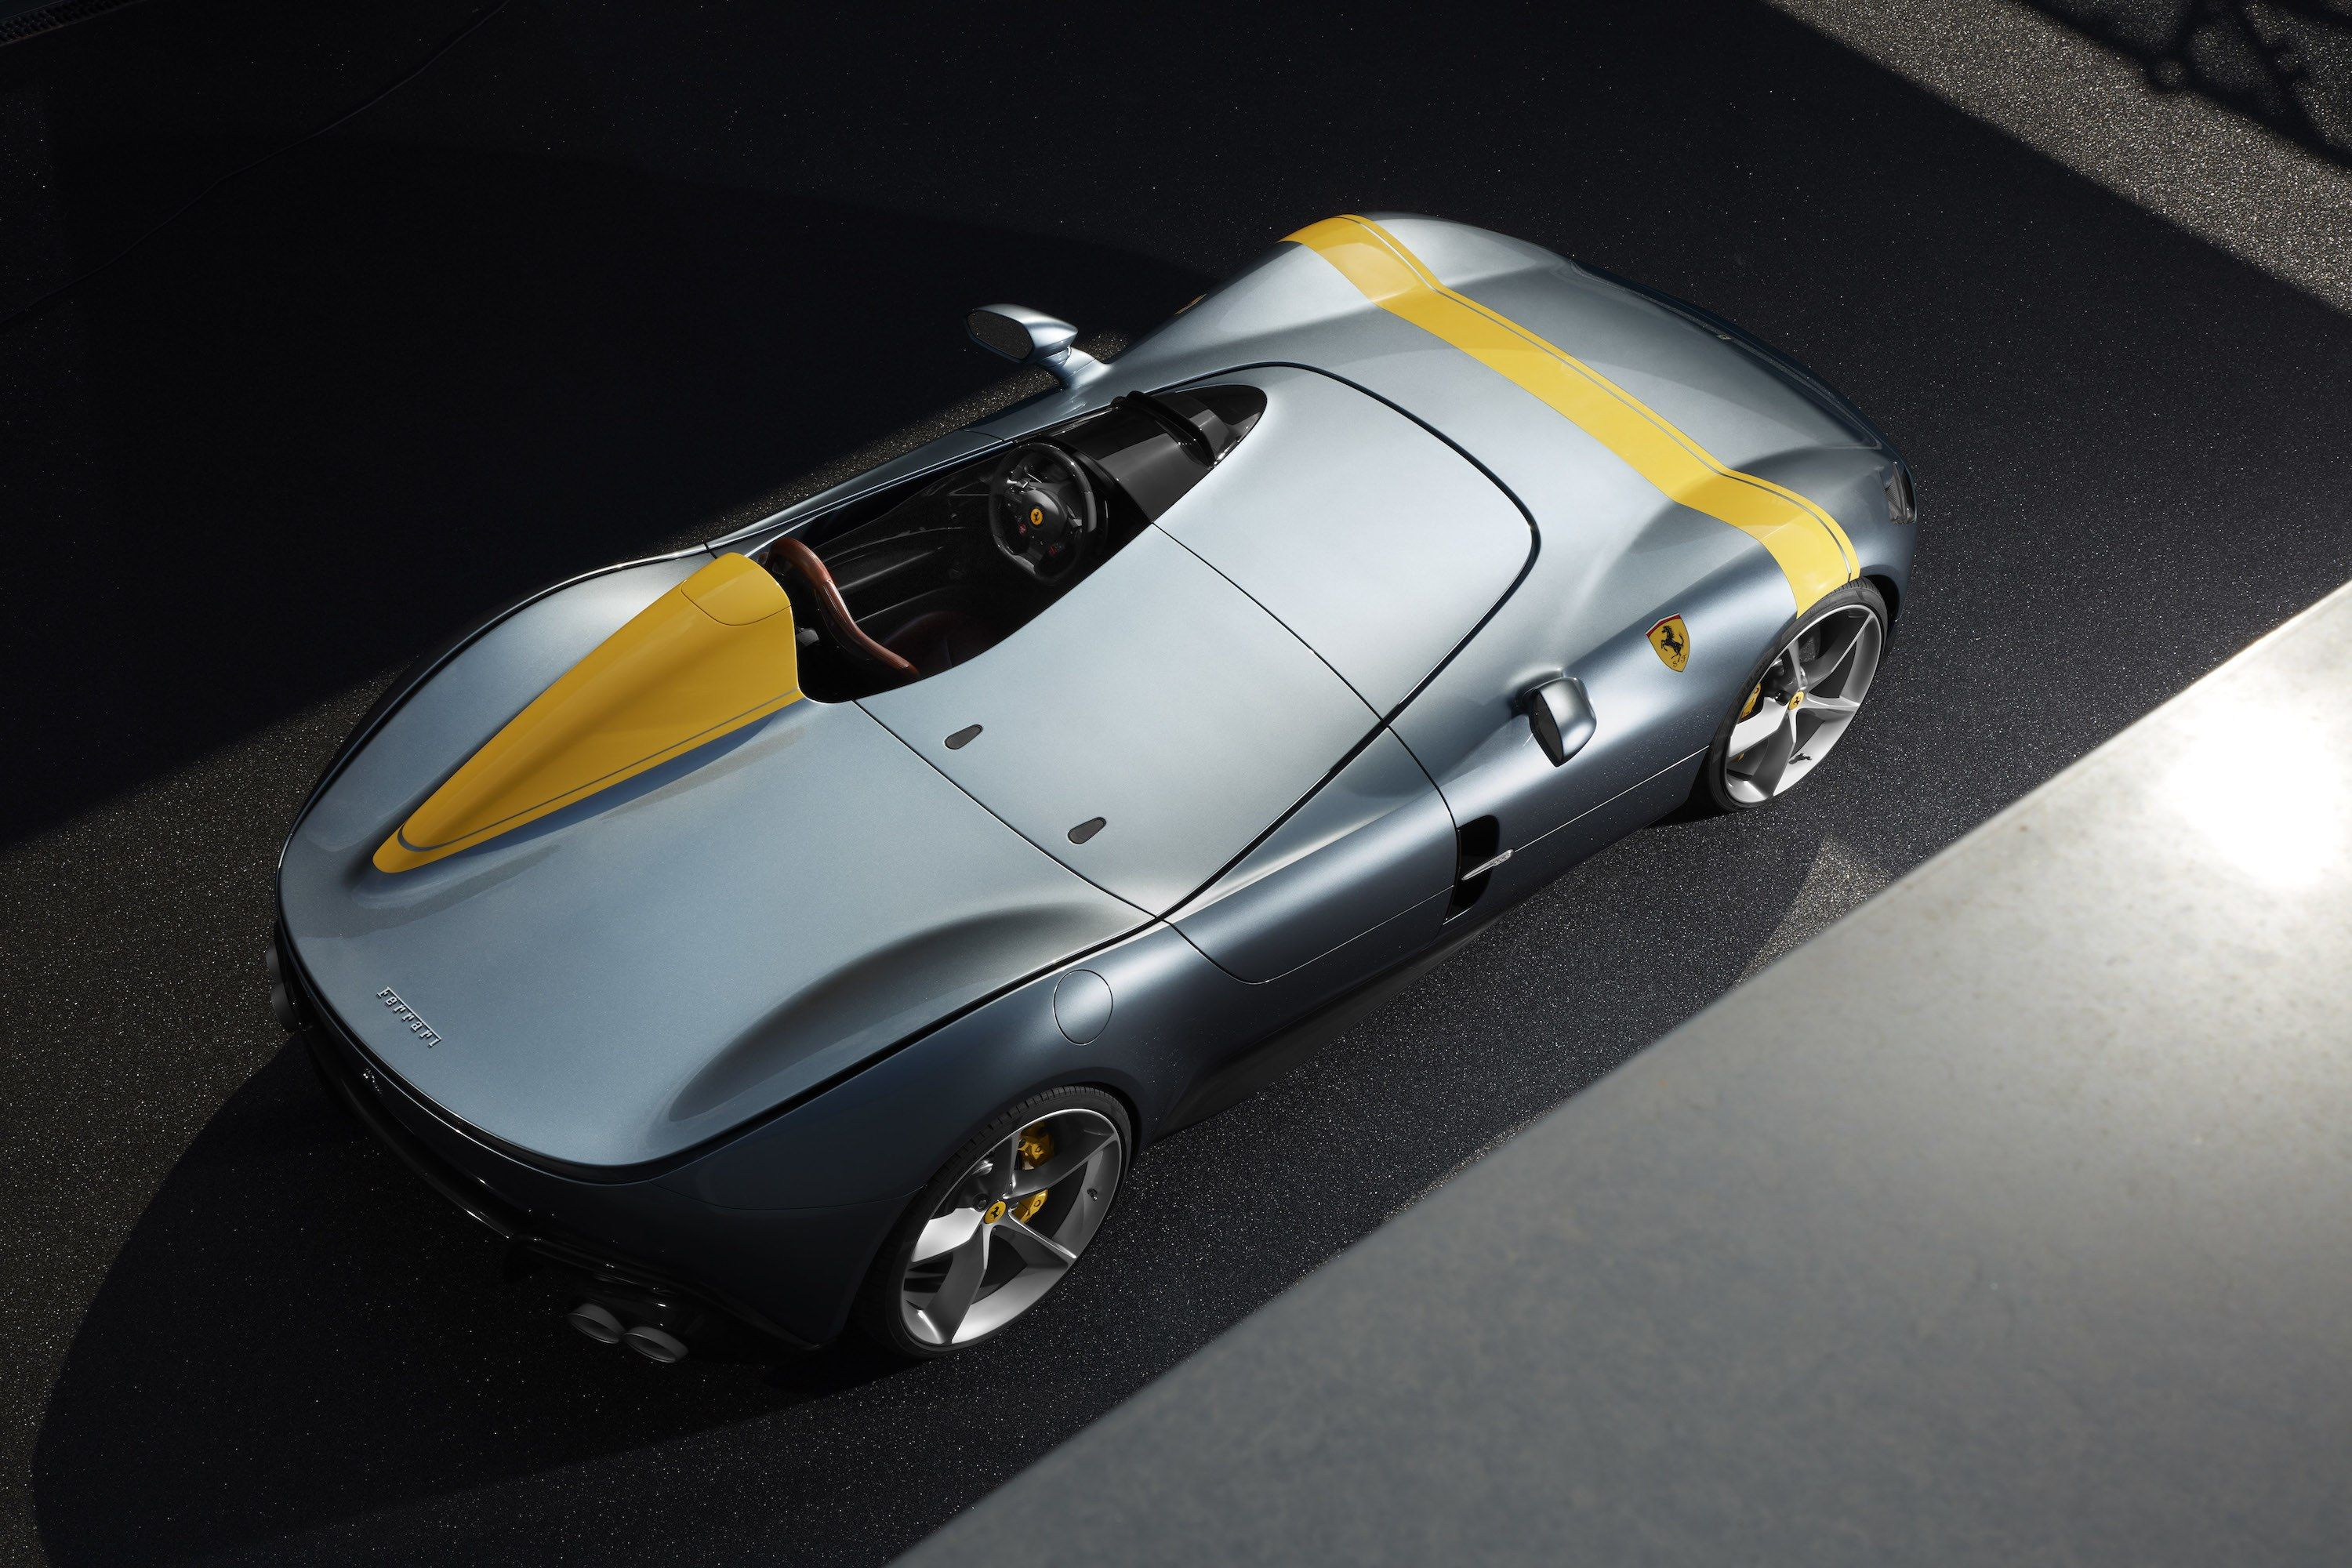 Ferrari S Newest Cars Have Just Been Unveiled And They Cost Seven Figures Ferrari New Car Sports Car New Sports Cars